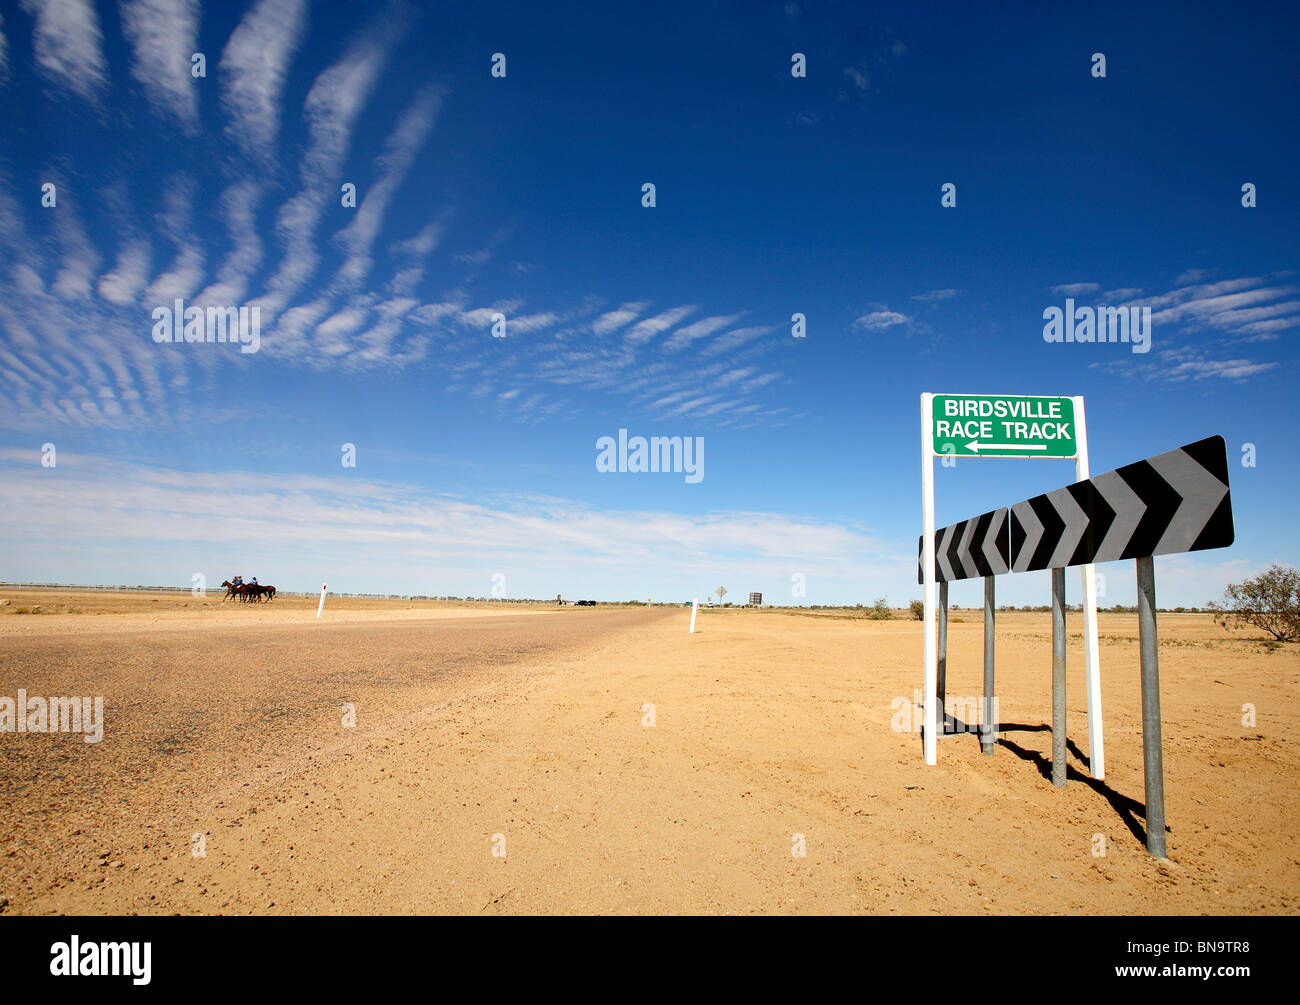 Birdsville race track sign - Stock Image